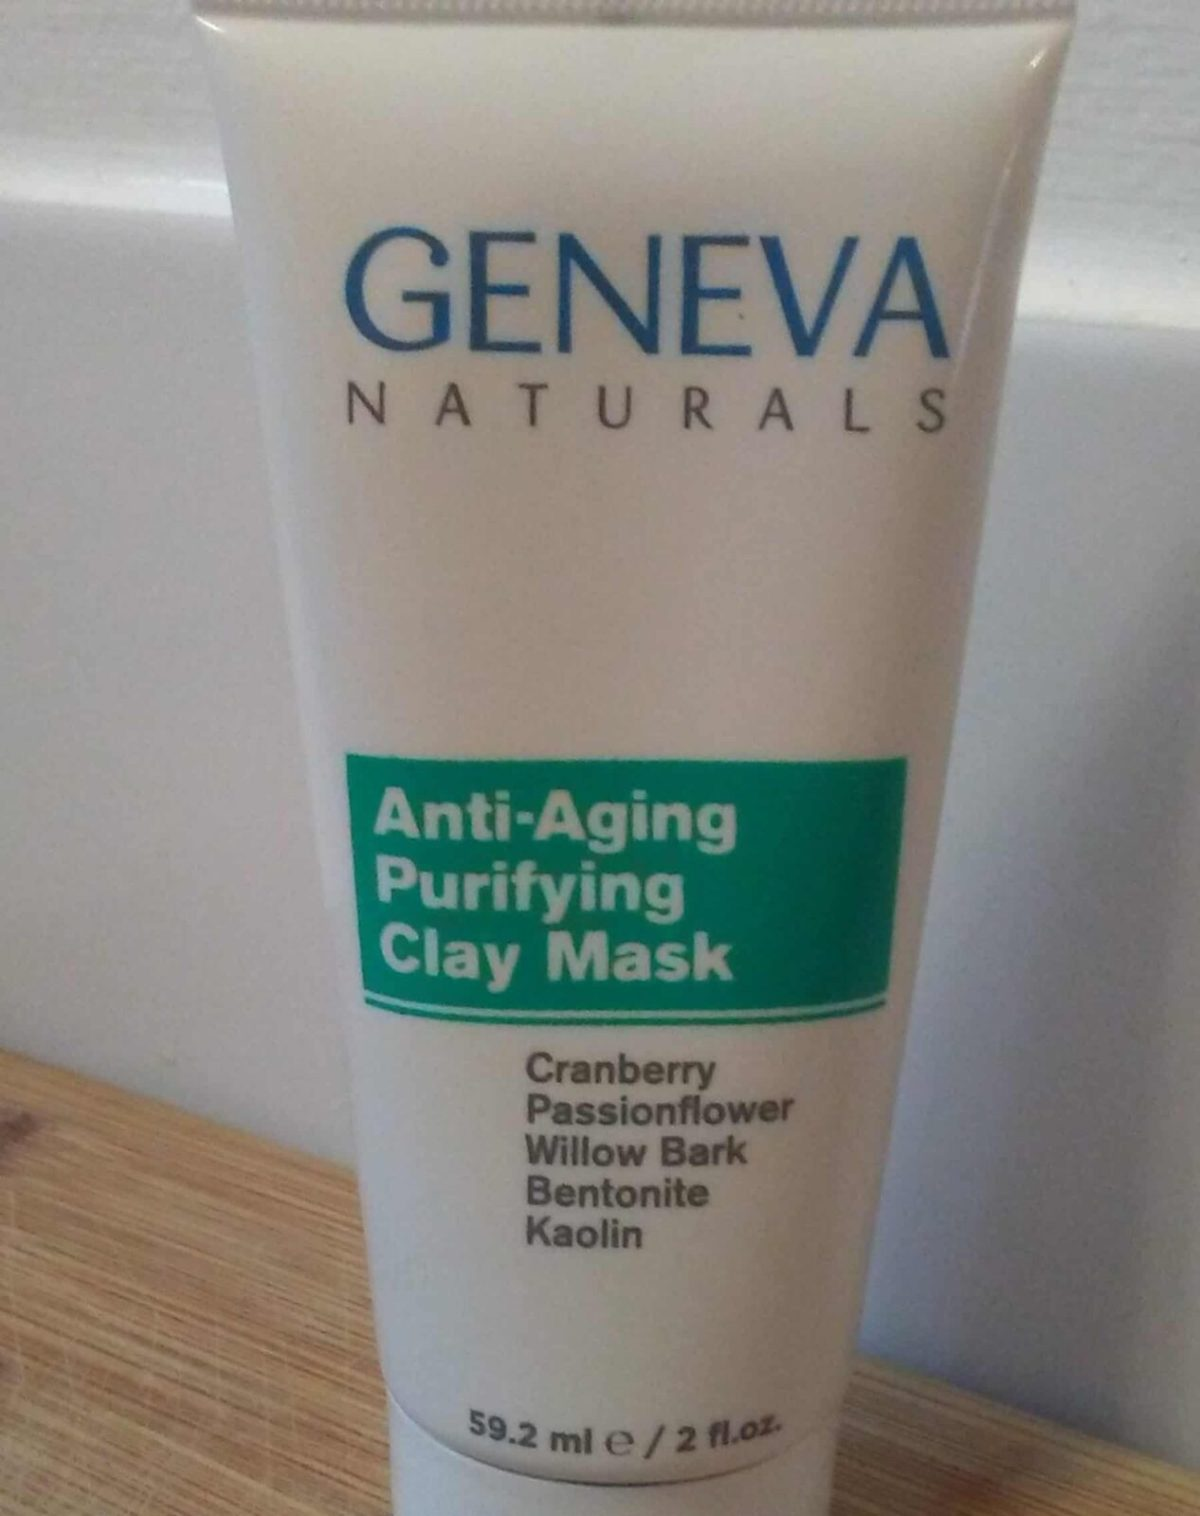 Geneva Naturals Anti-Aging Purifying Clay Mask Review